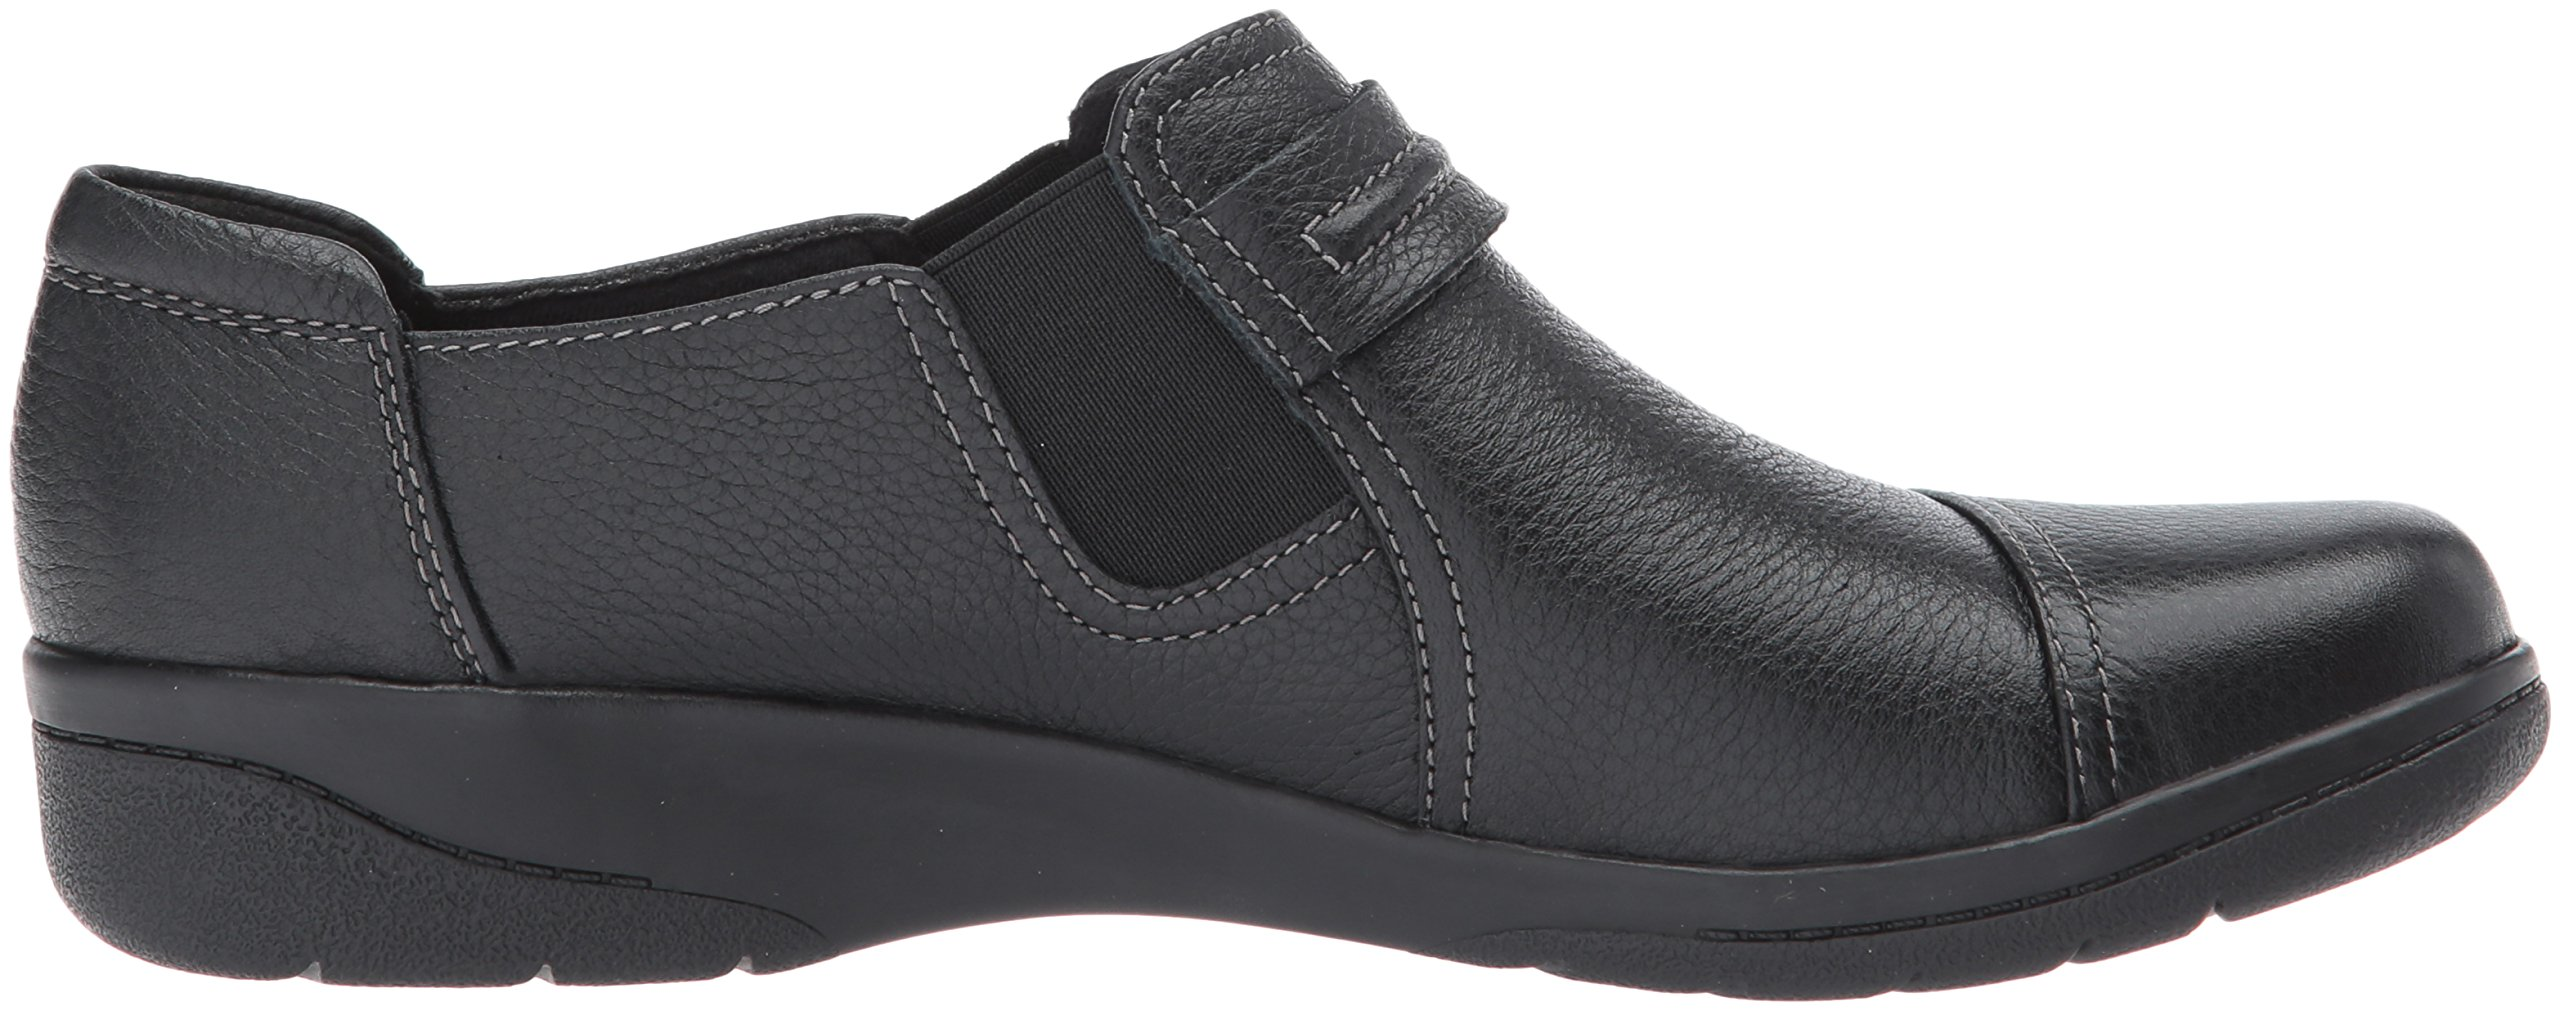 Clarks Women's Cheyn Madi Slip-On Loafer, Black Tumbled Leather, 9.5 W US by CLARKS (Image #7)